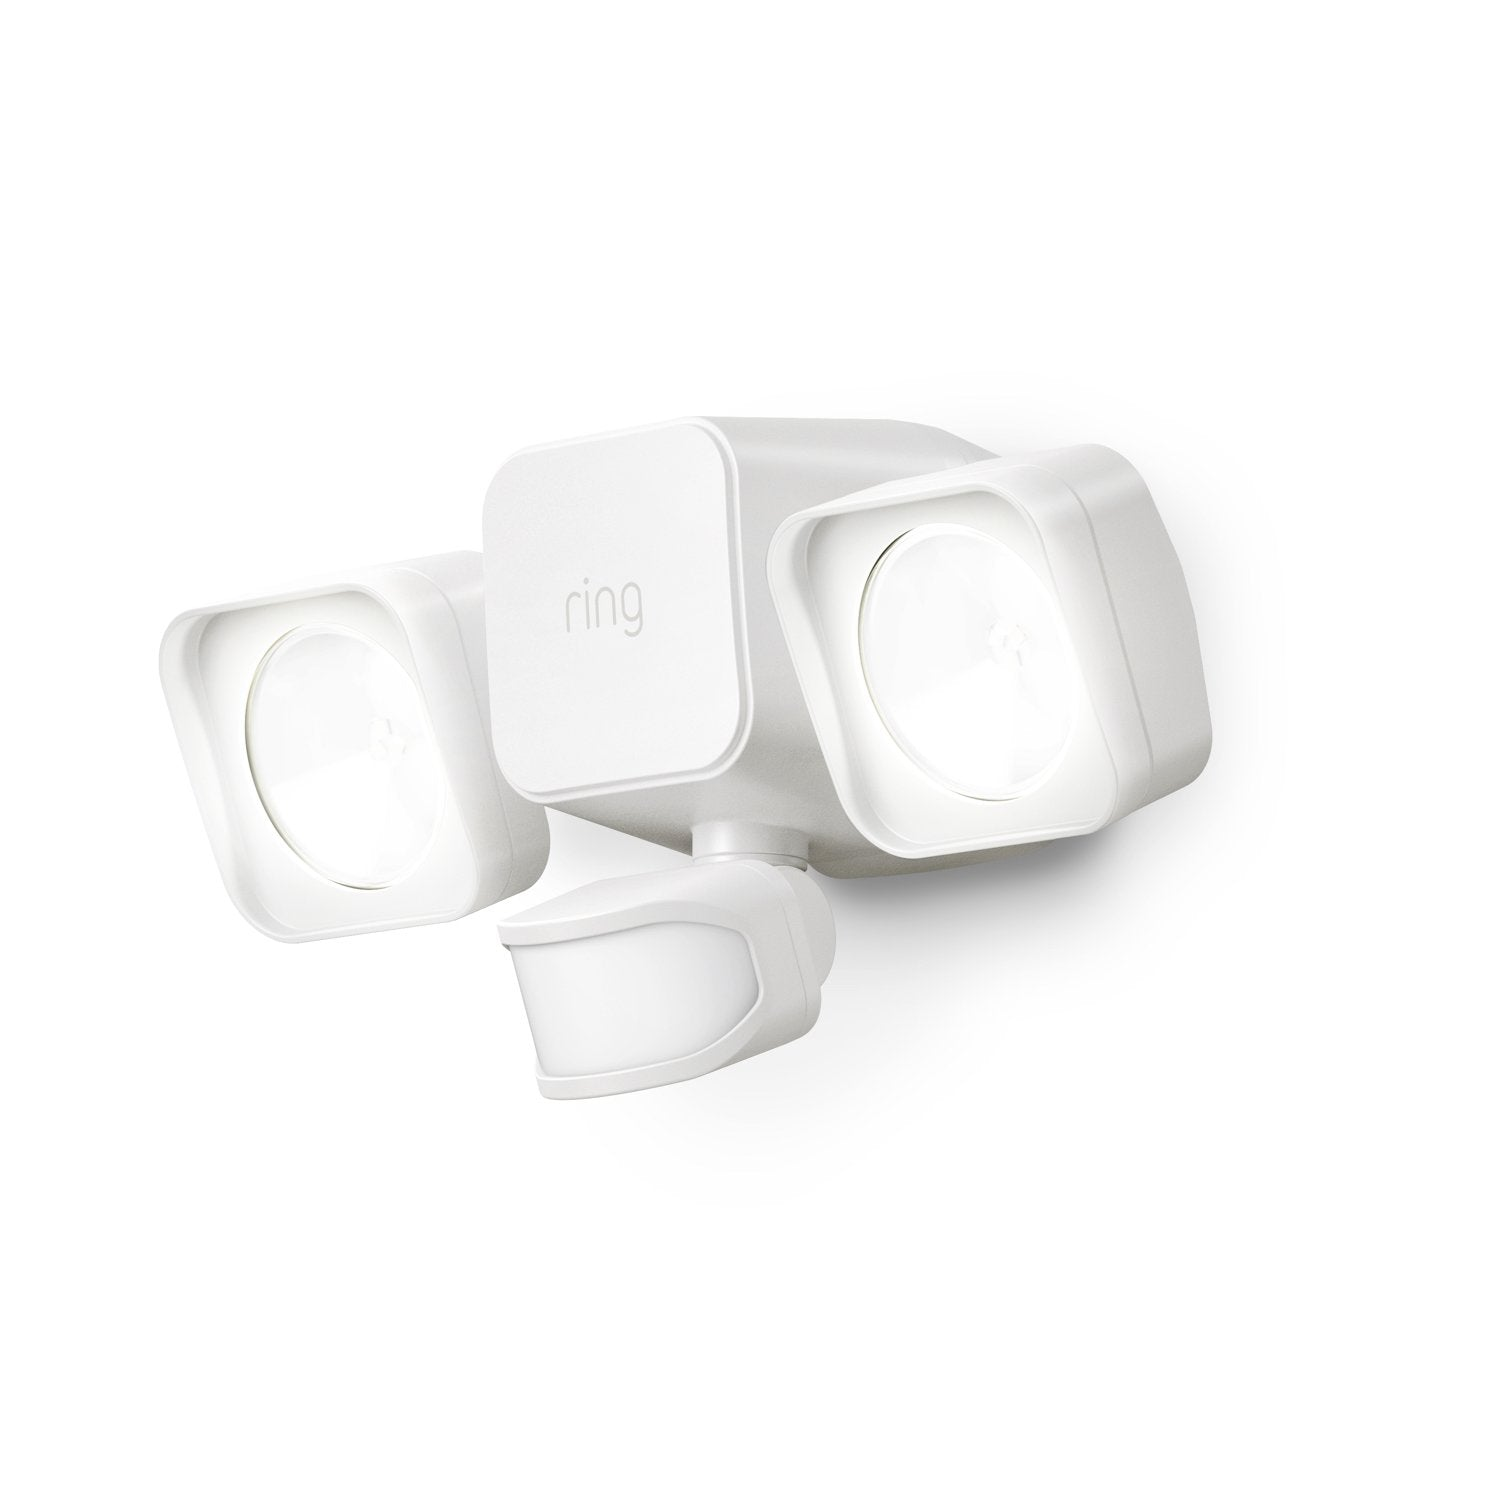 Ring Smart Lighting Wired Floodlight - White